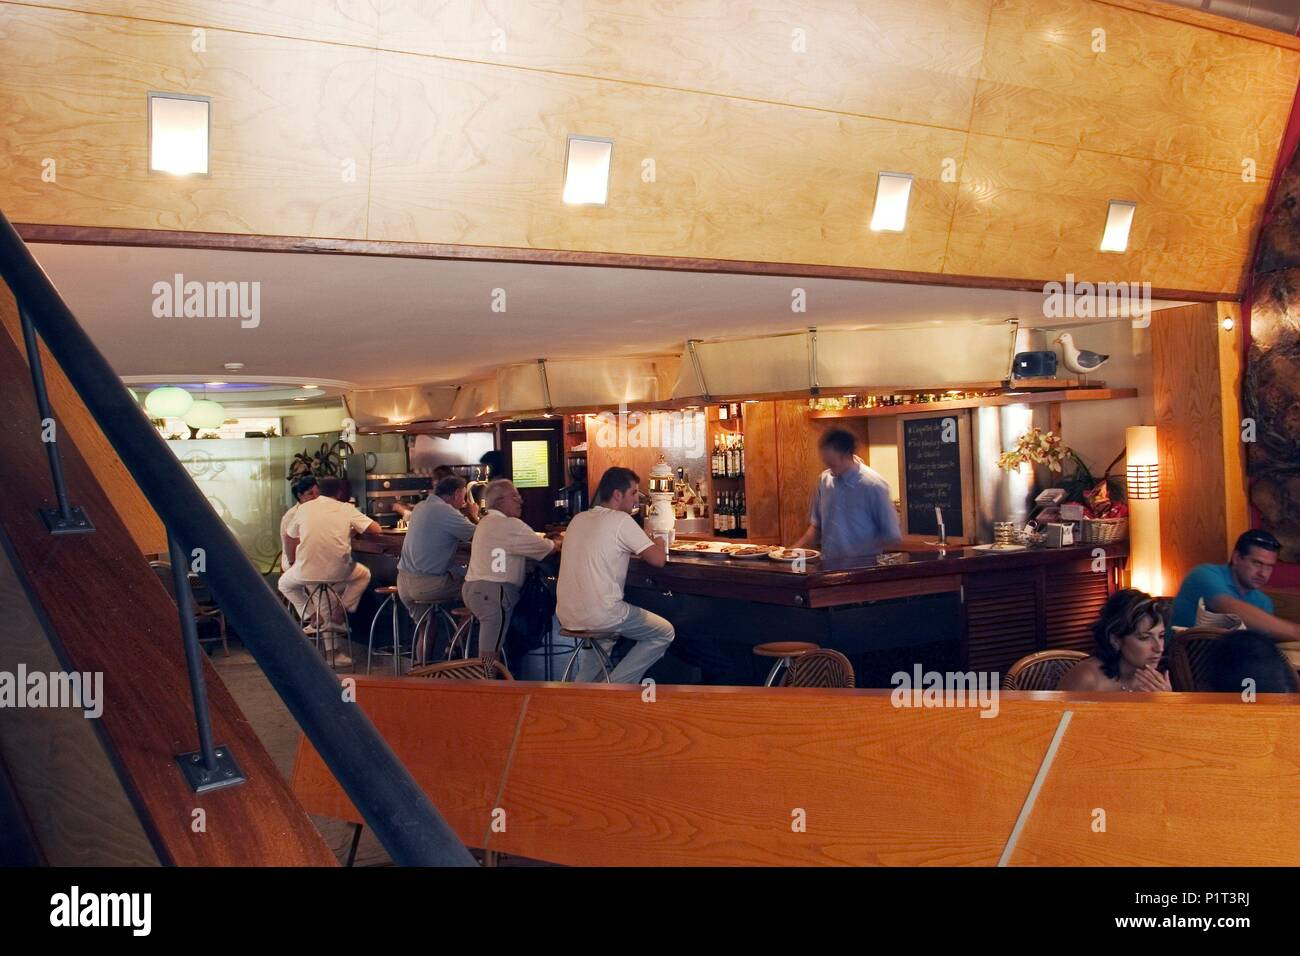 Frugal electo barrer  Perla Bar Restaurant High Resolution Stock Photography and Images - Alamy